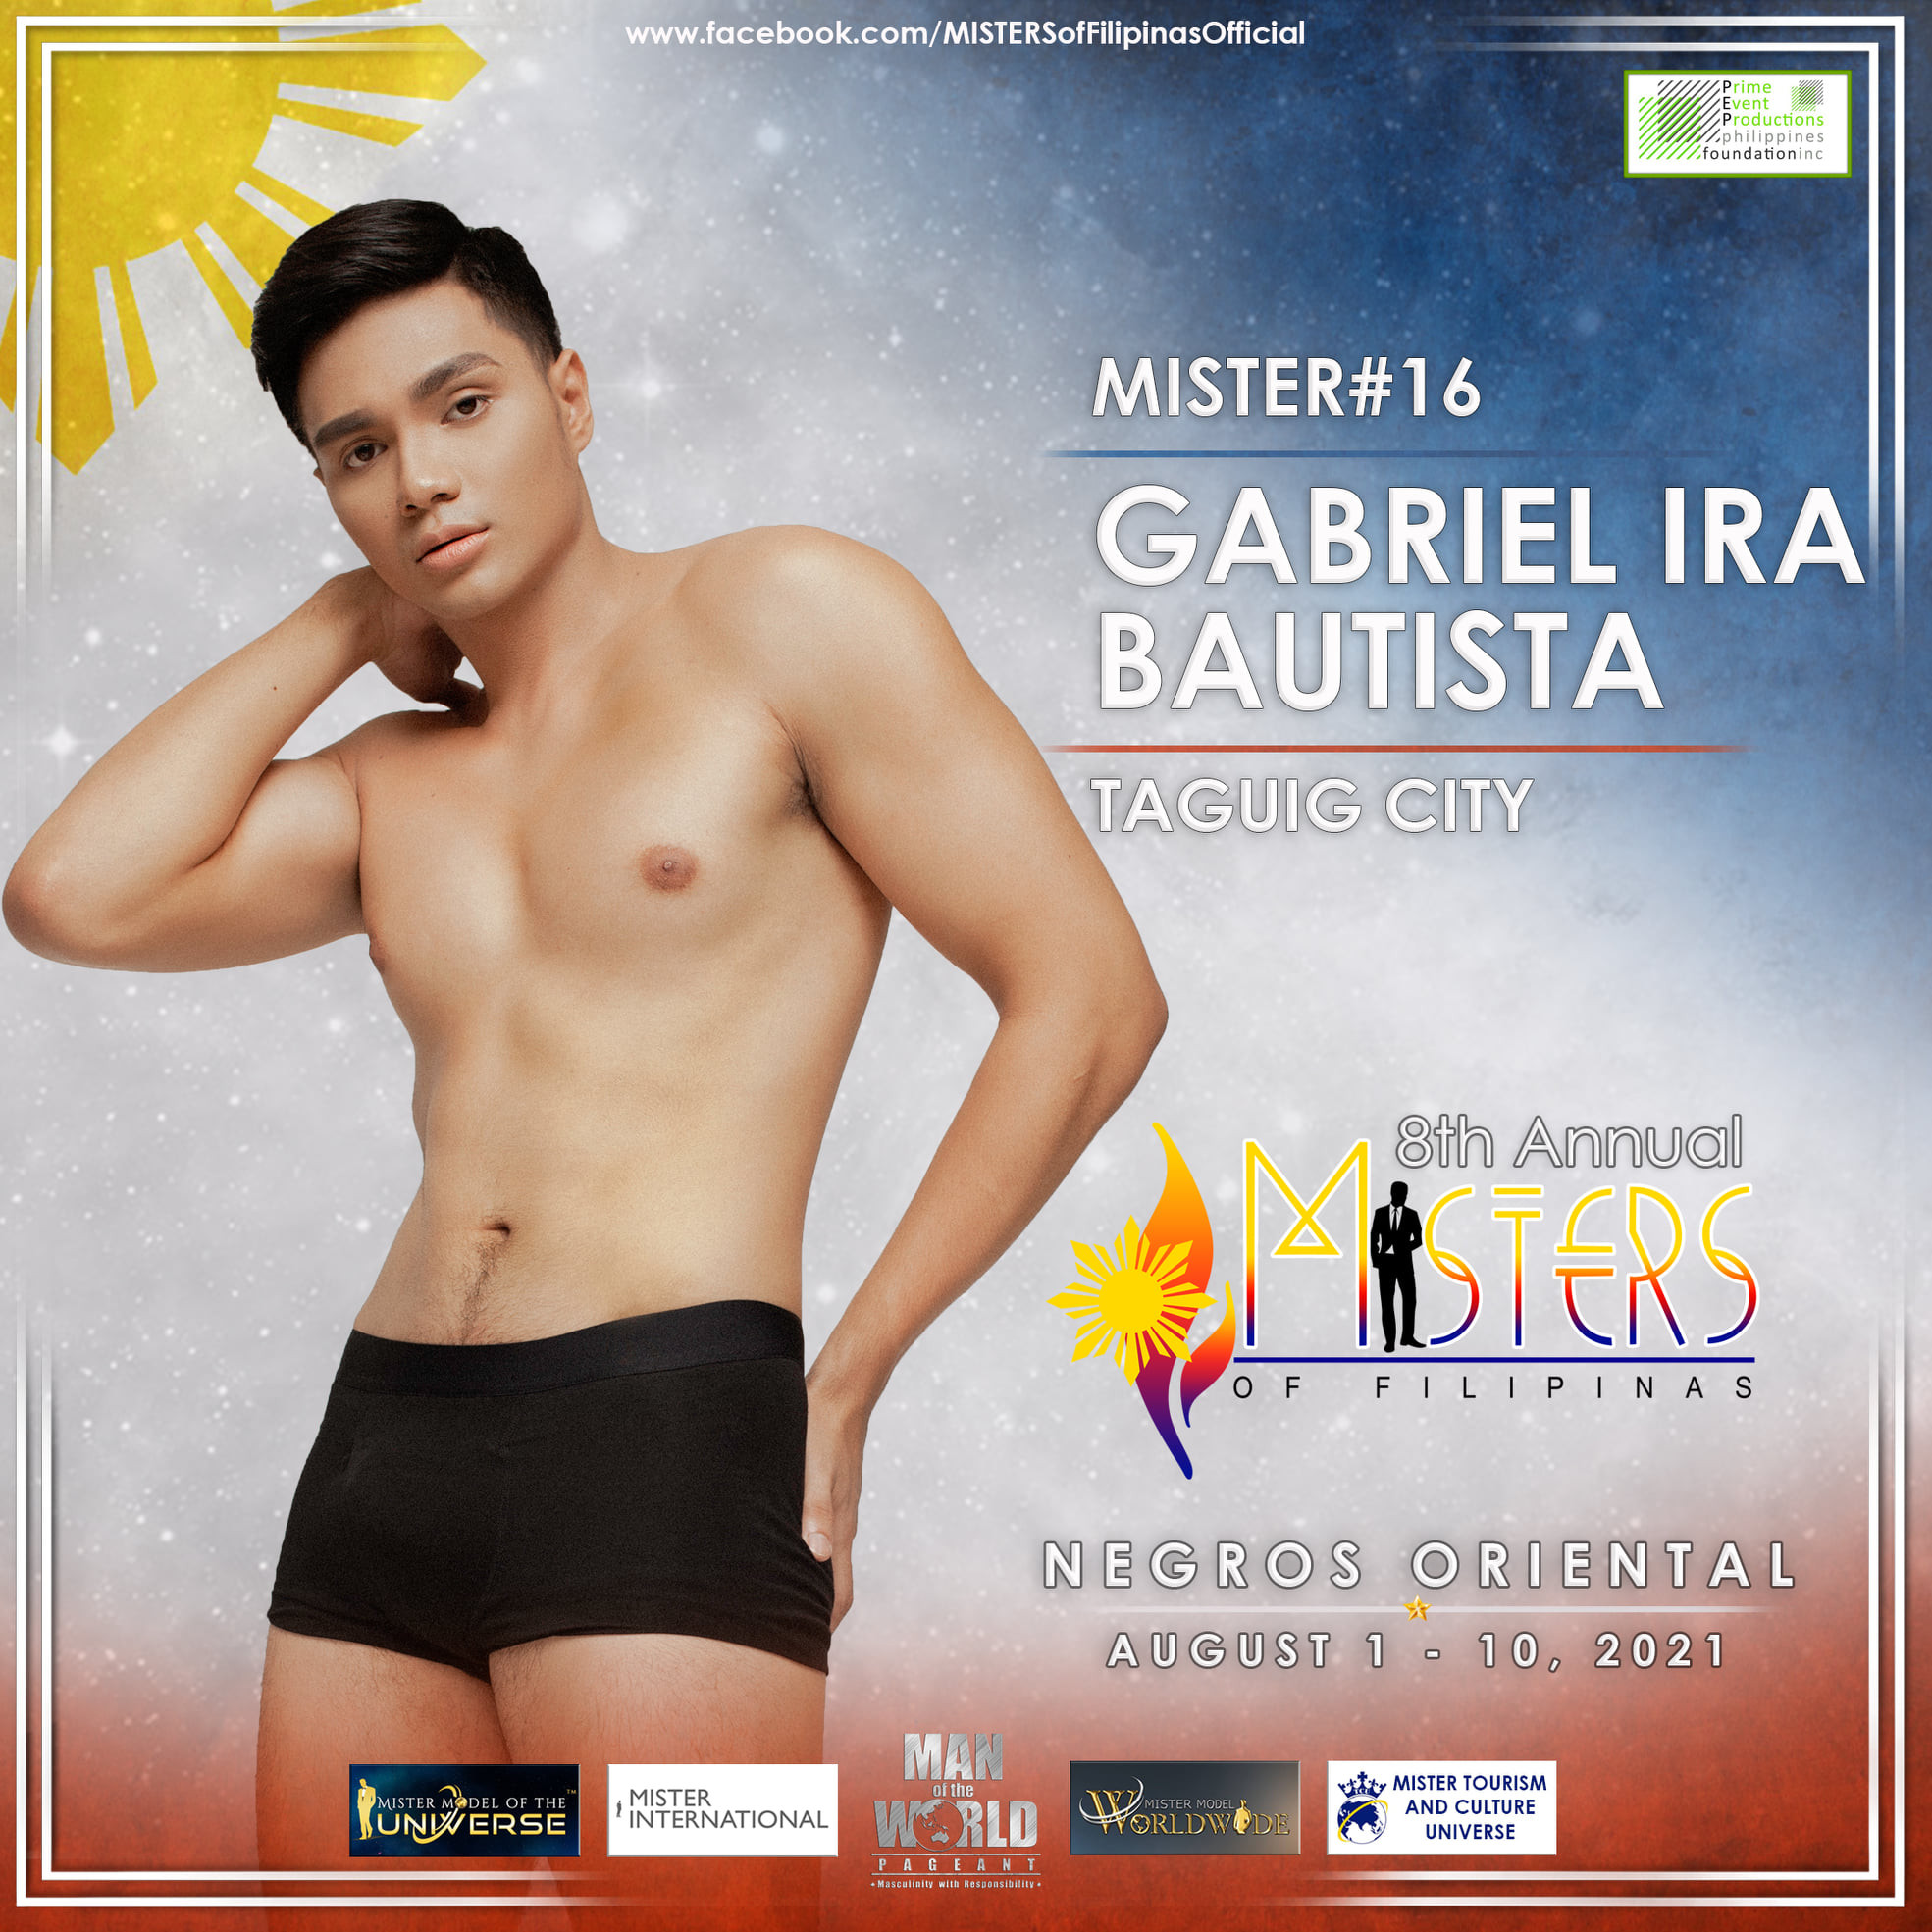 candidatos a misters of filipinas 2021. final: 27 agosto. - Página 2 Own6Kl